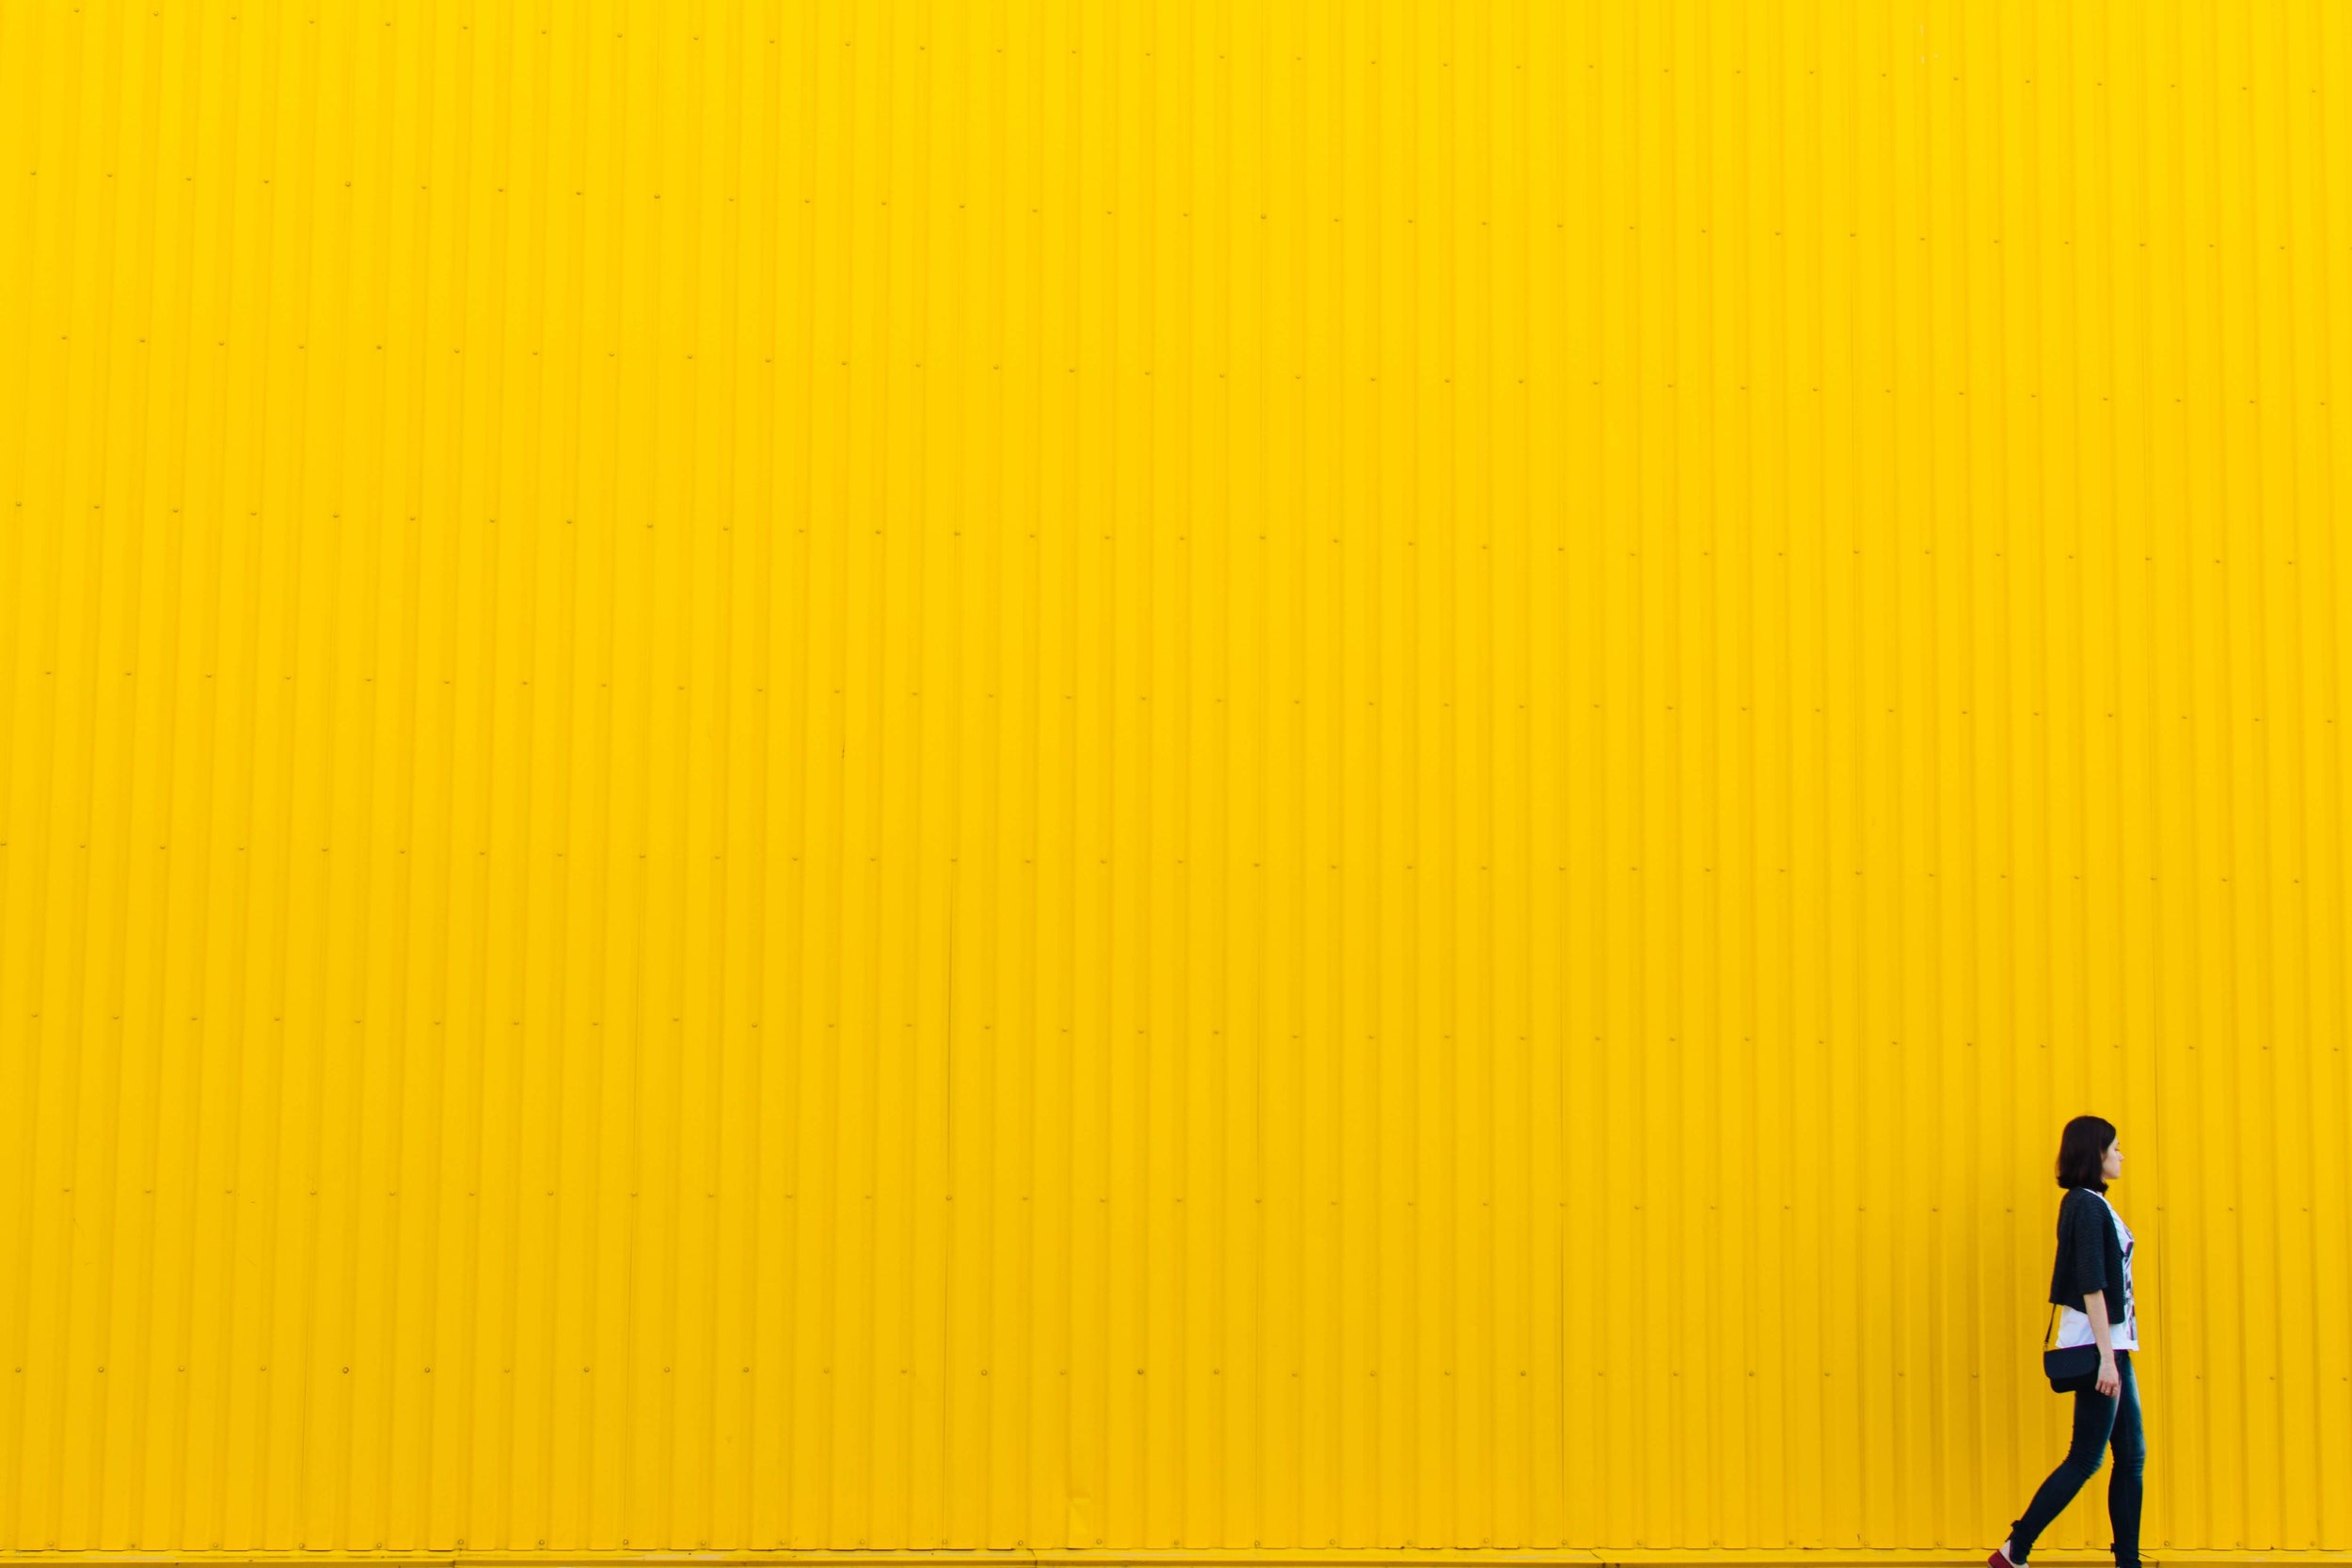 yellow-background.jpg